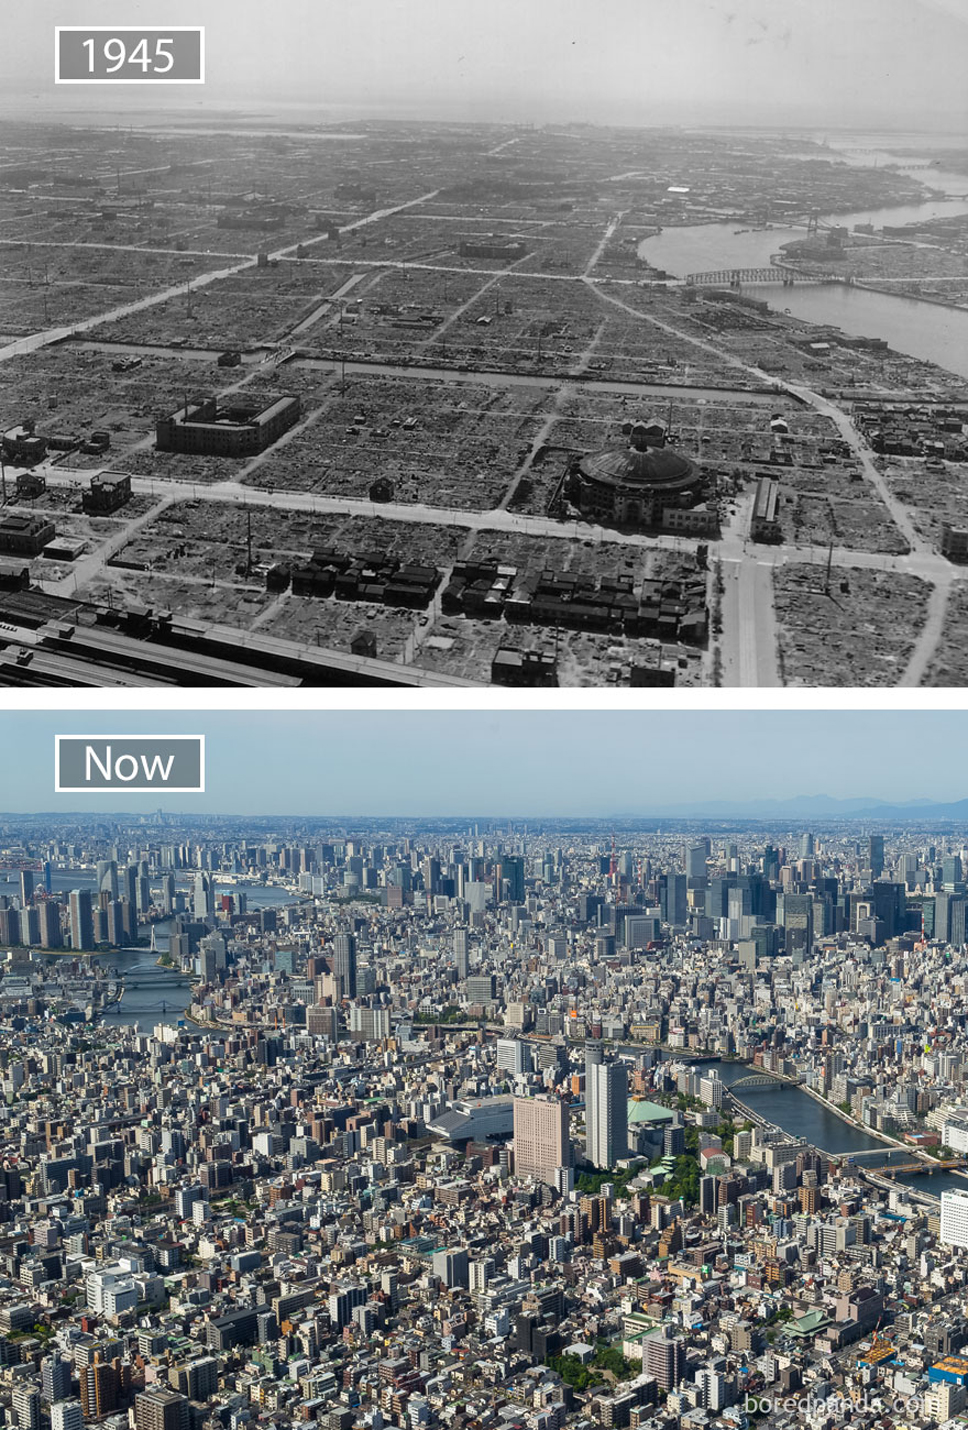 how-famous-city-changed-timelapse-evolution-before-after-1-57736d1784fde__880